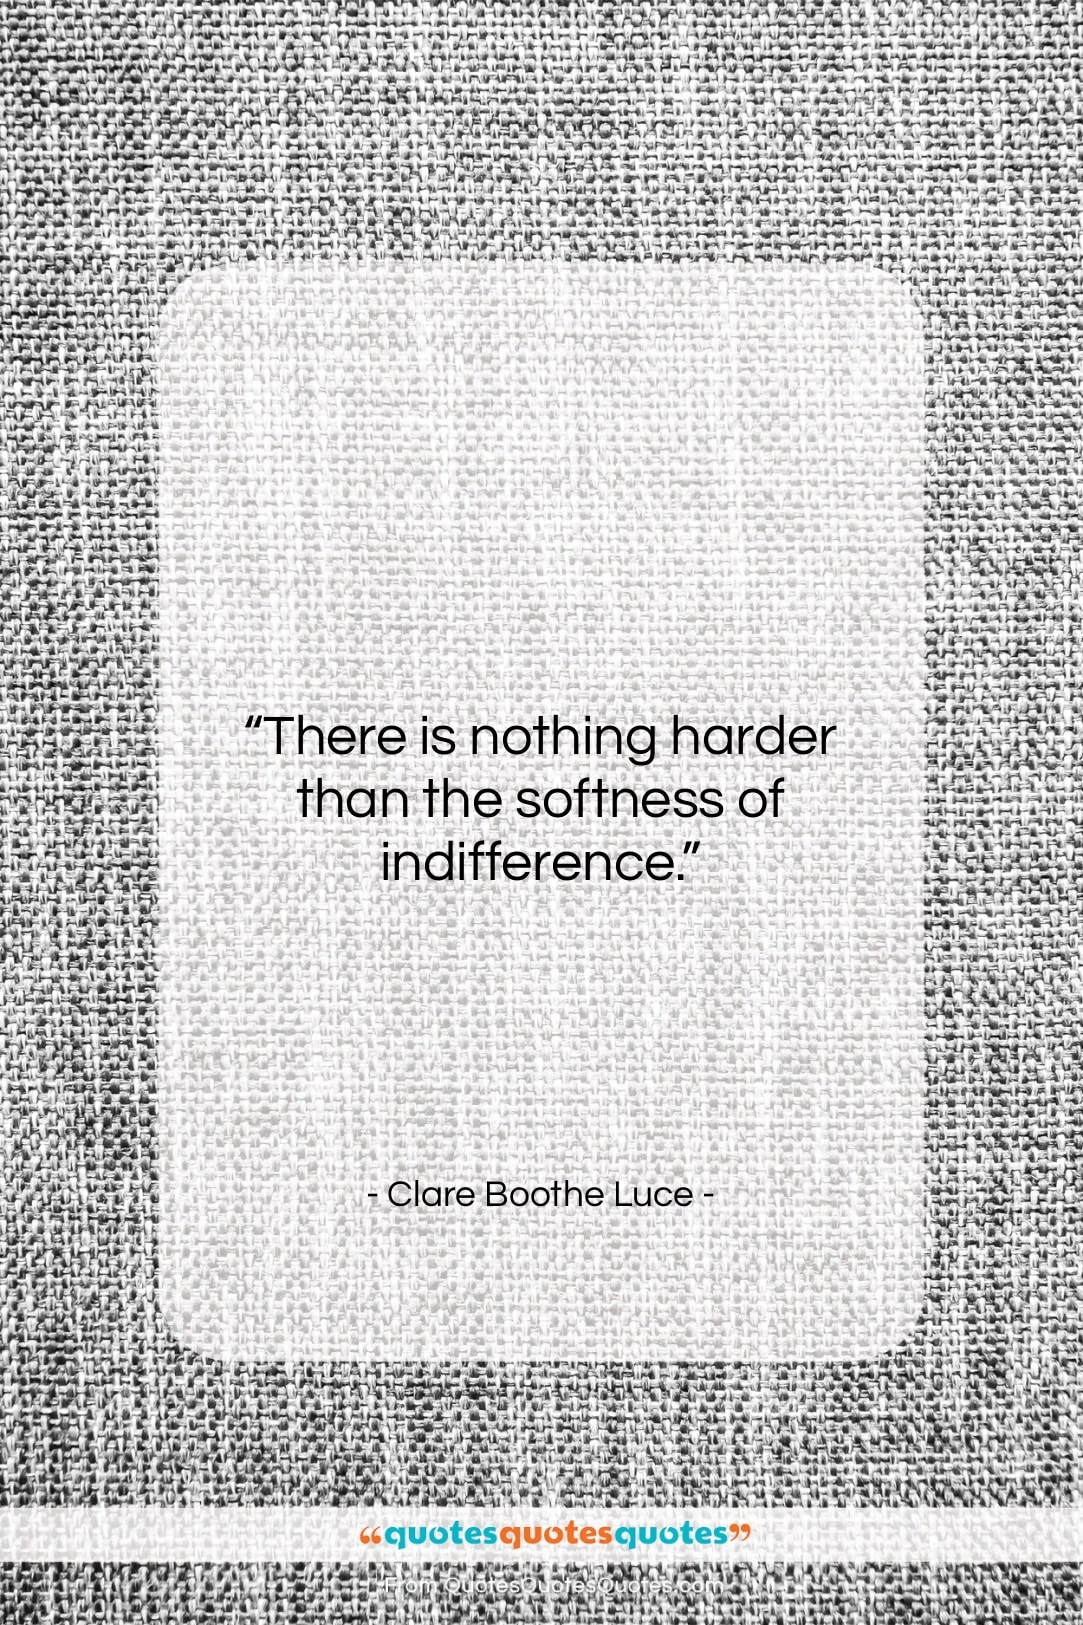 """Clare Boothe Luce quote: """"There is nothing harder than the softness…""""- at QuotesQuotesQuotes.com"""